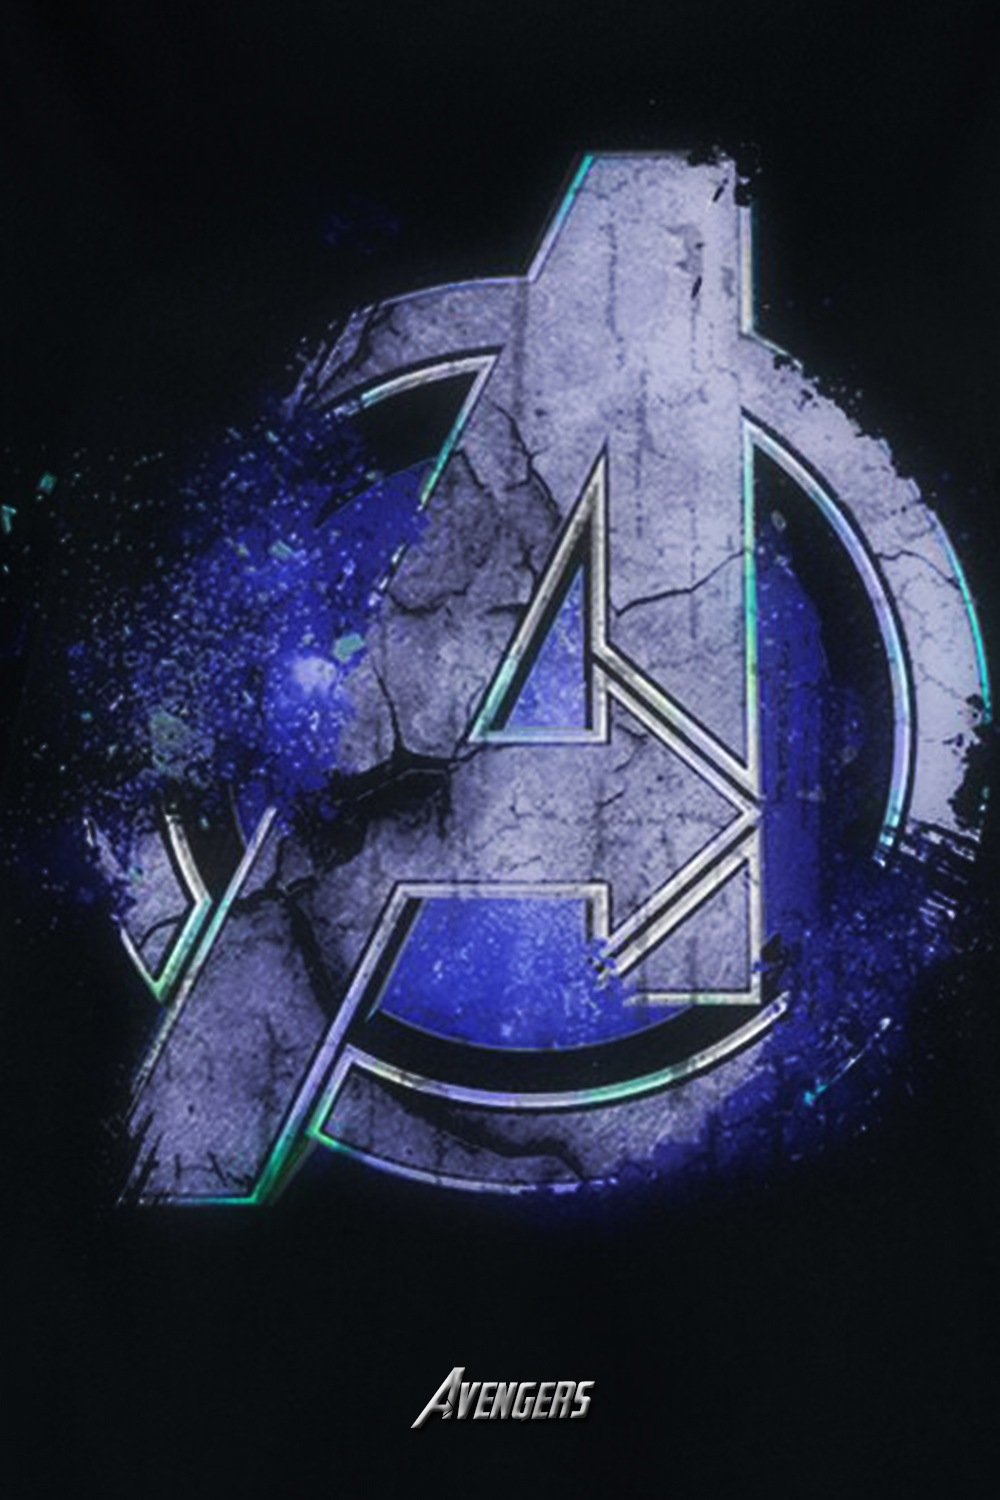 Best Avengers Wallpaper For Mobile Download In 2020